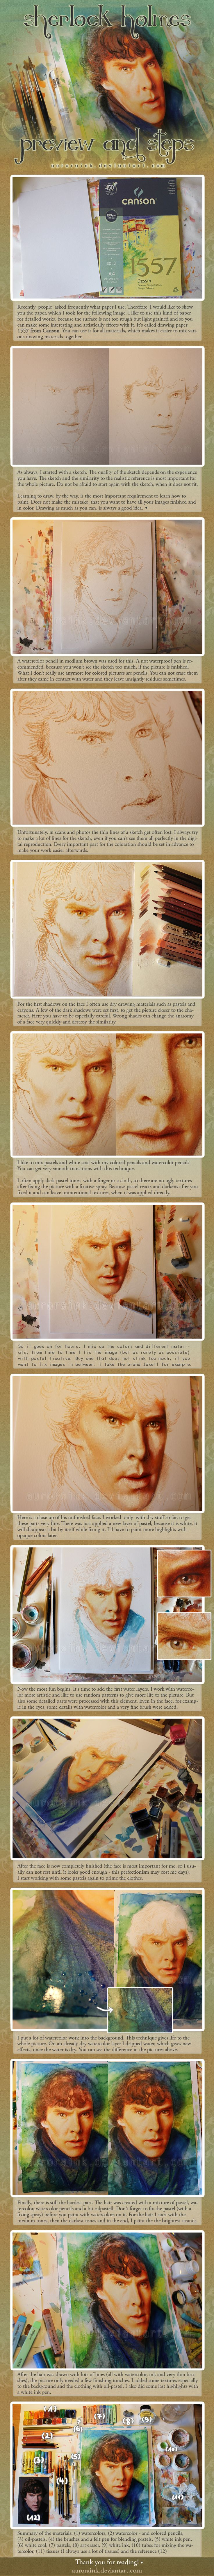 Sherlock Holmes Preview and Steps Tutorial by *auroraink on deviantART